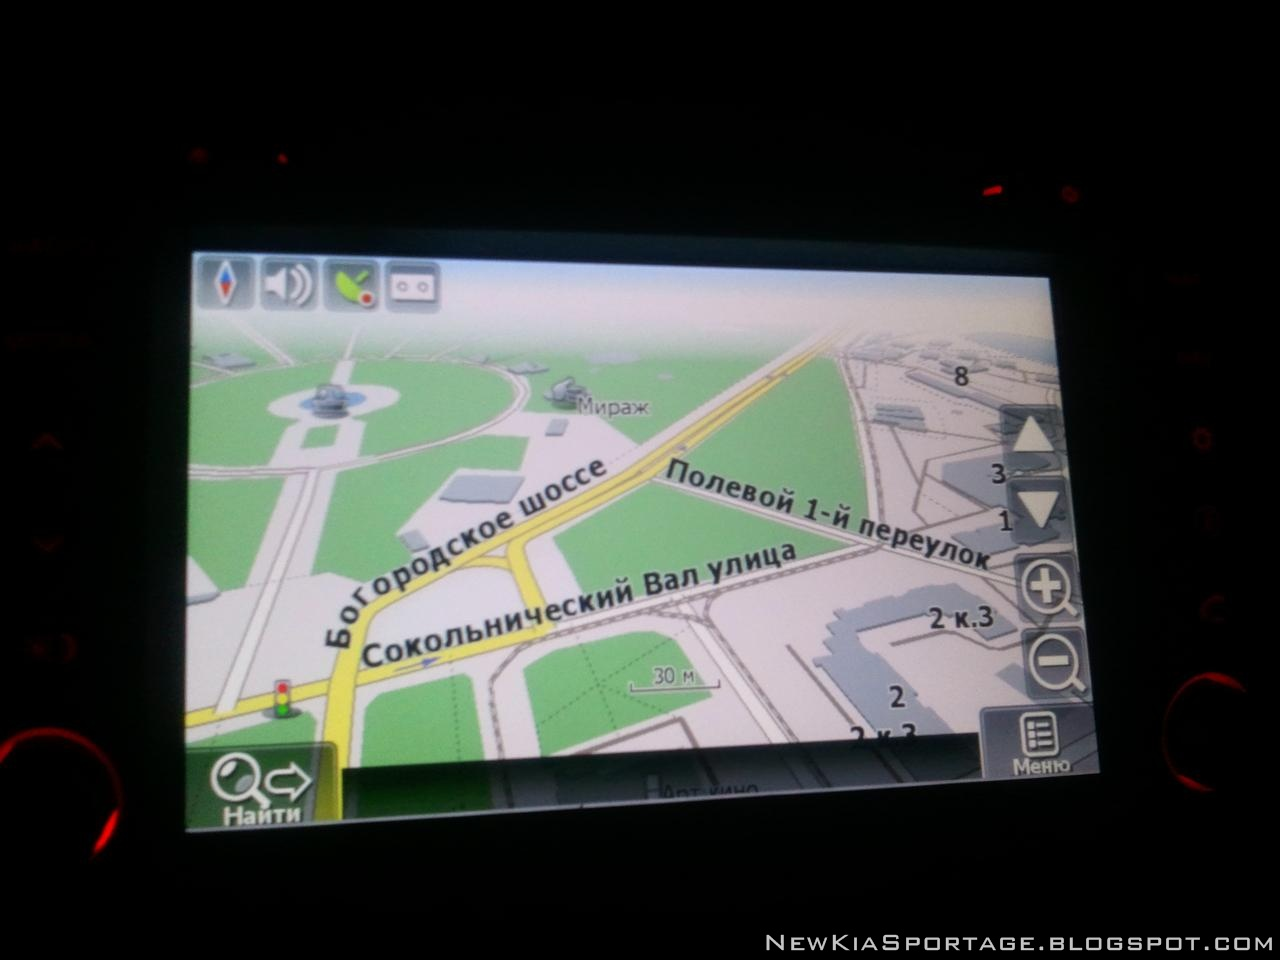 Windows CE en el Navegador del KIA Sportage !!